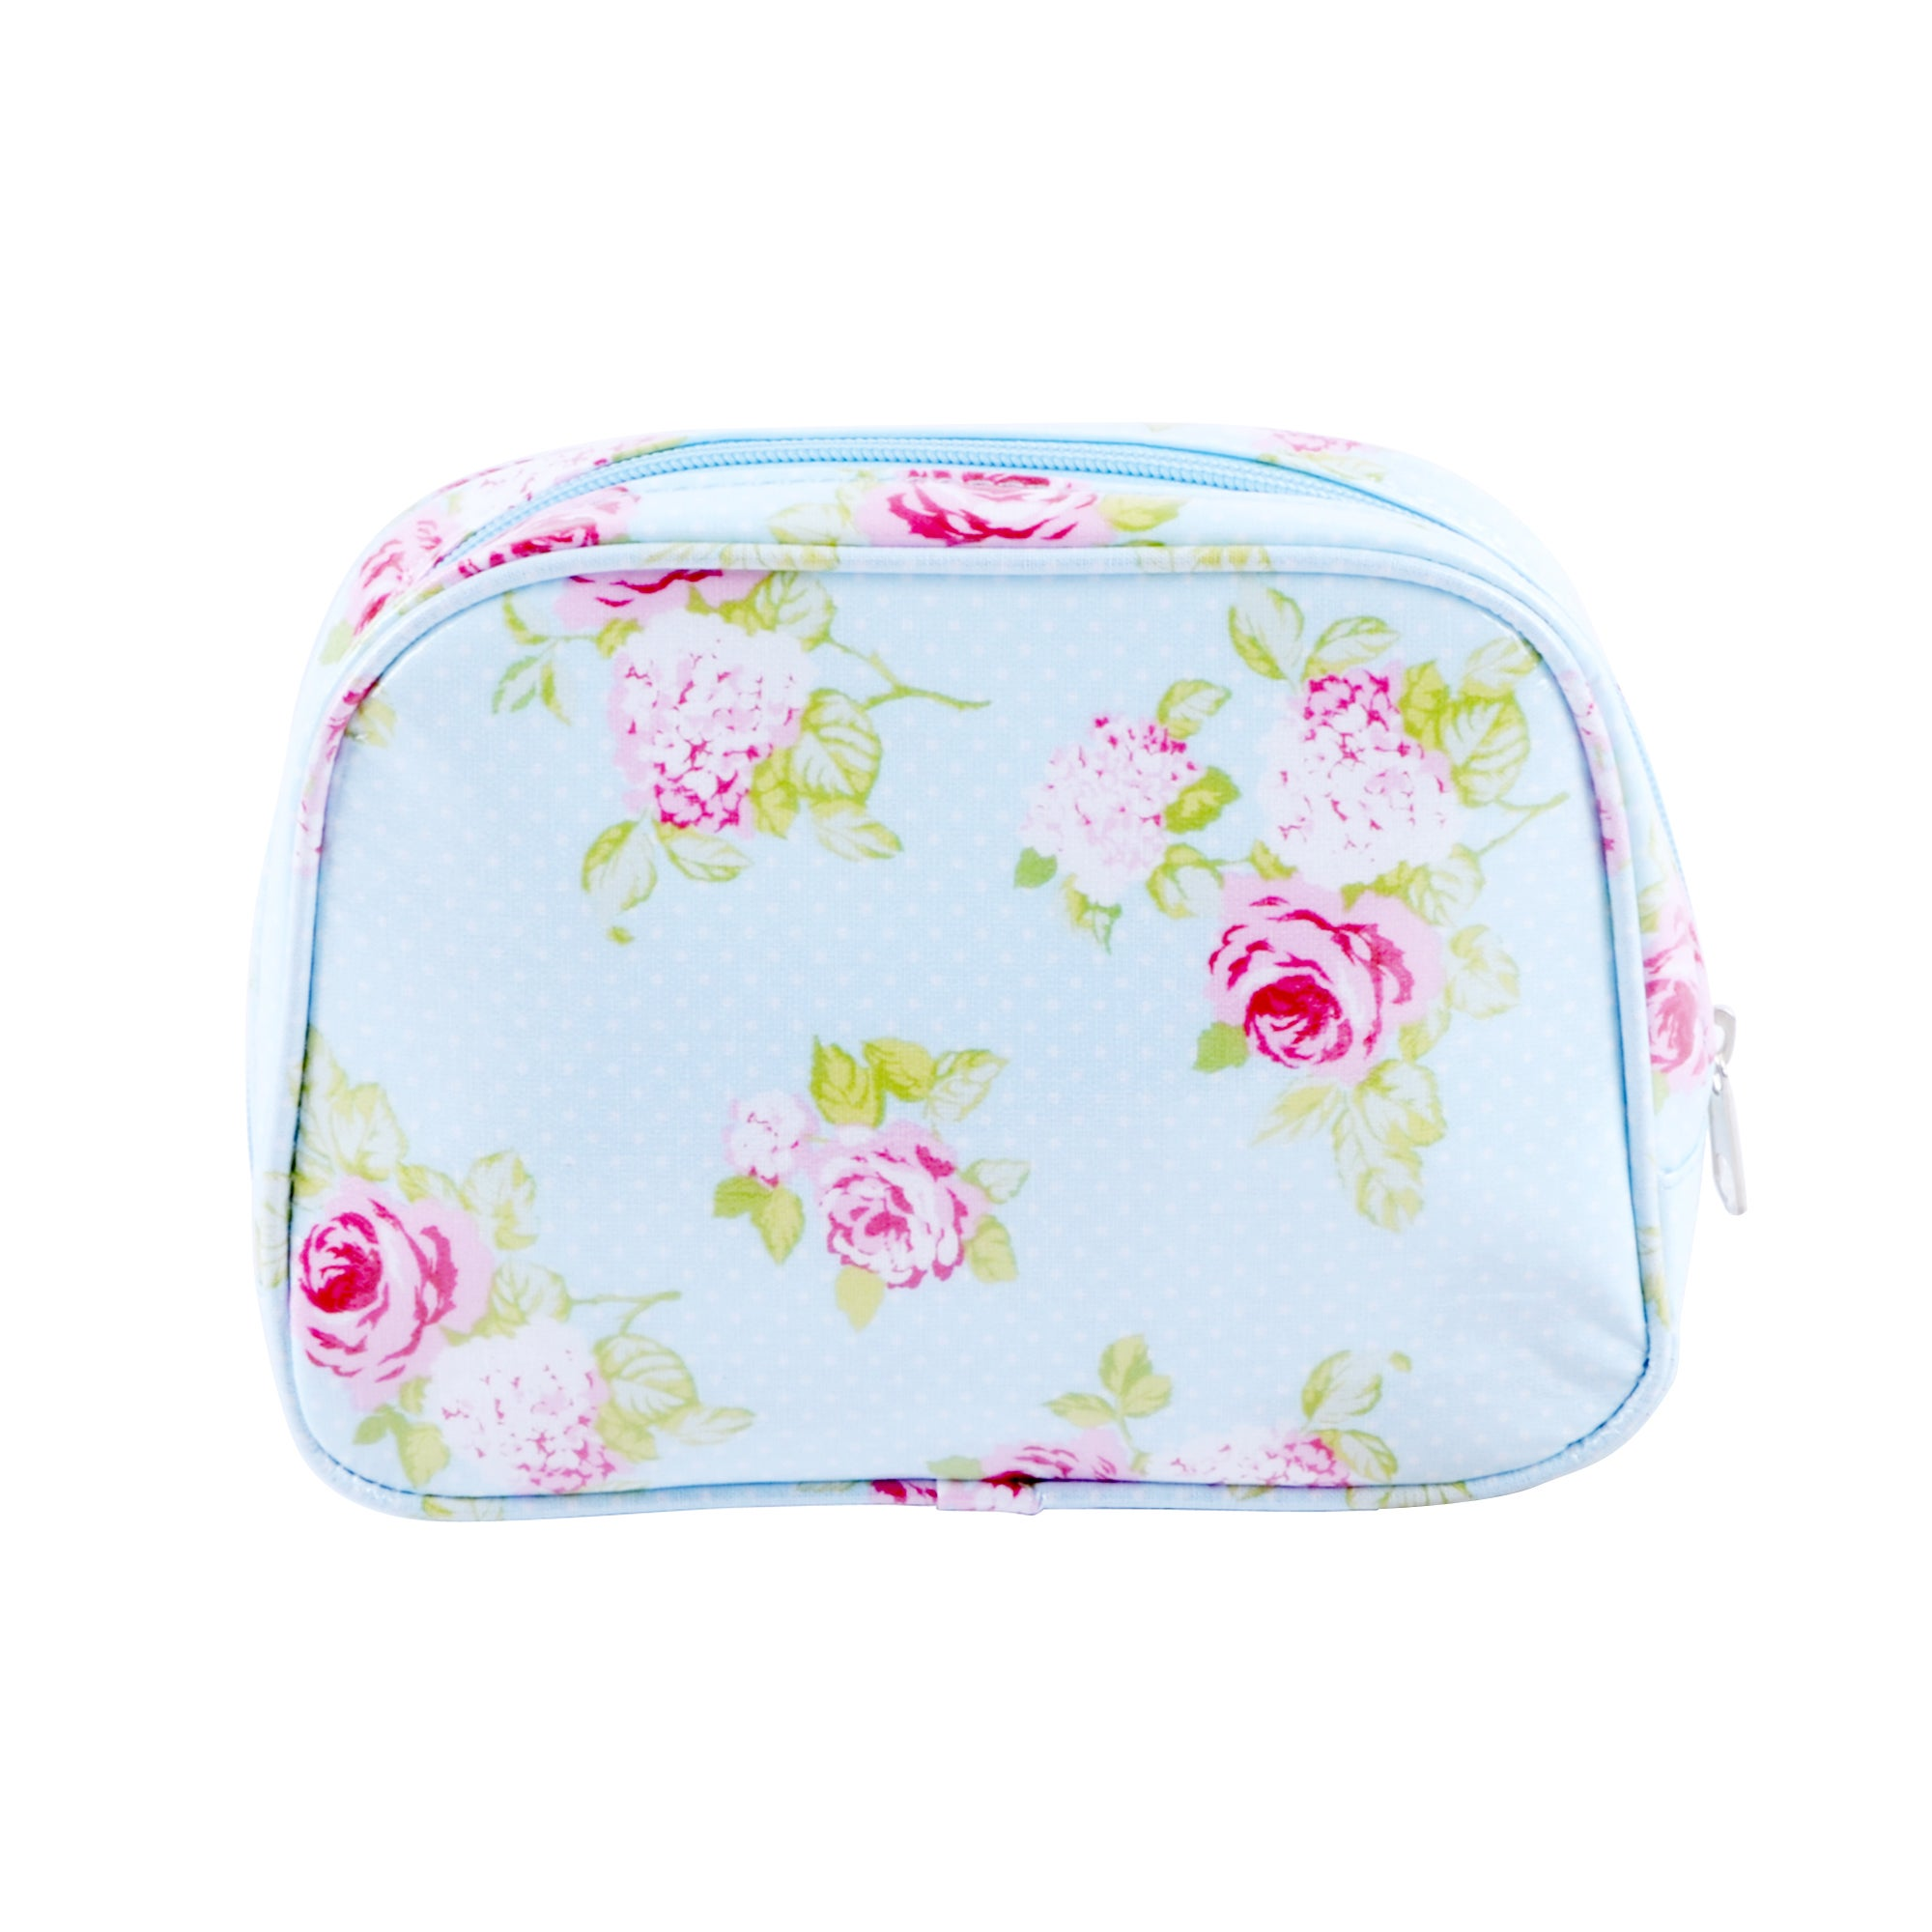 Rose and Ellis Claredon Collection Wash Bag